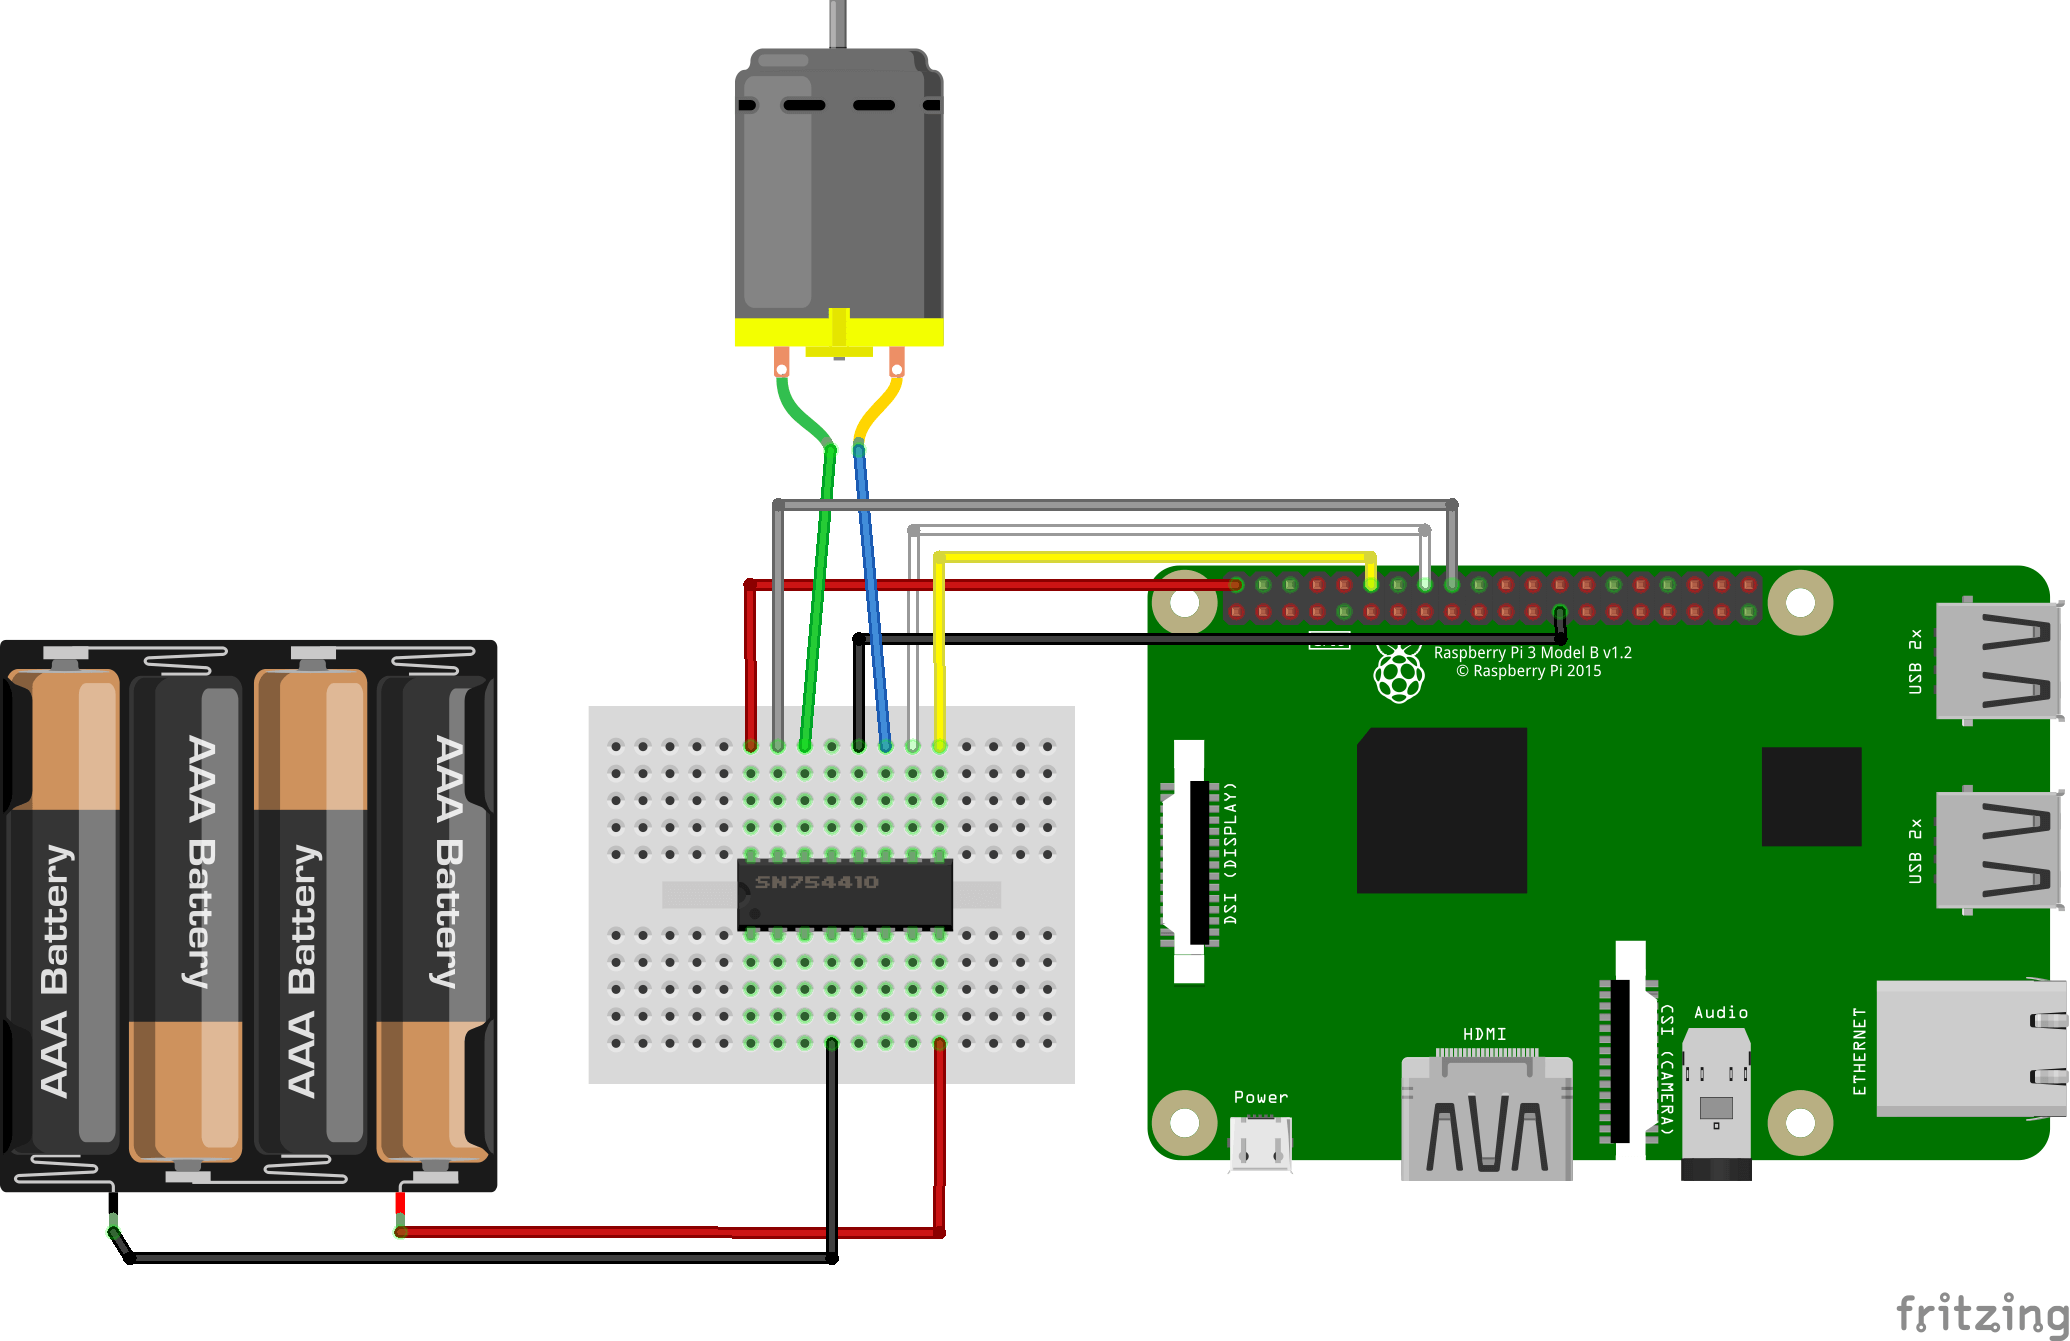 Control A Dc Motor With Raspberry Pi Aranacorp Bridge Pwm Driver Amplifier It Is Such Complete Hbridge Depending On The Power Required For Voltage Output Of May Be Used But Strongly Advised To Use An External Supply